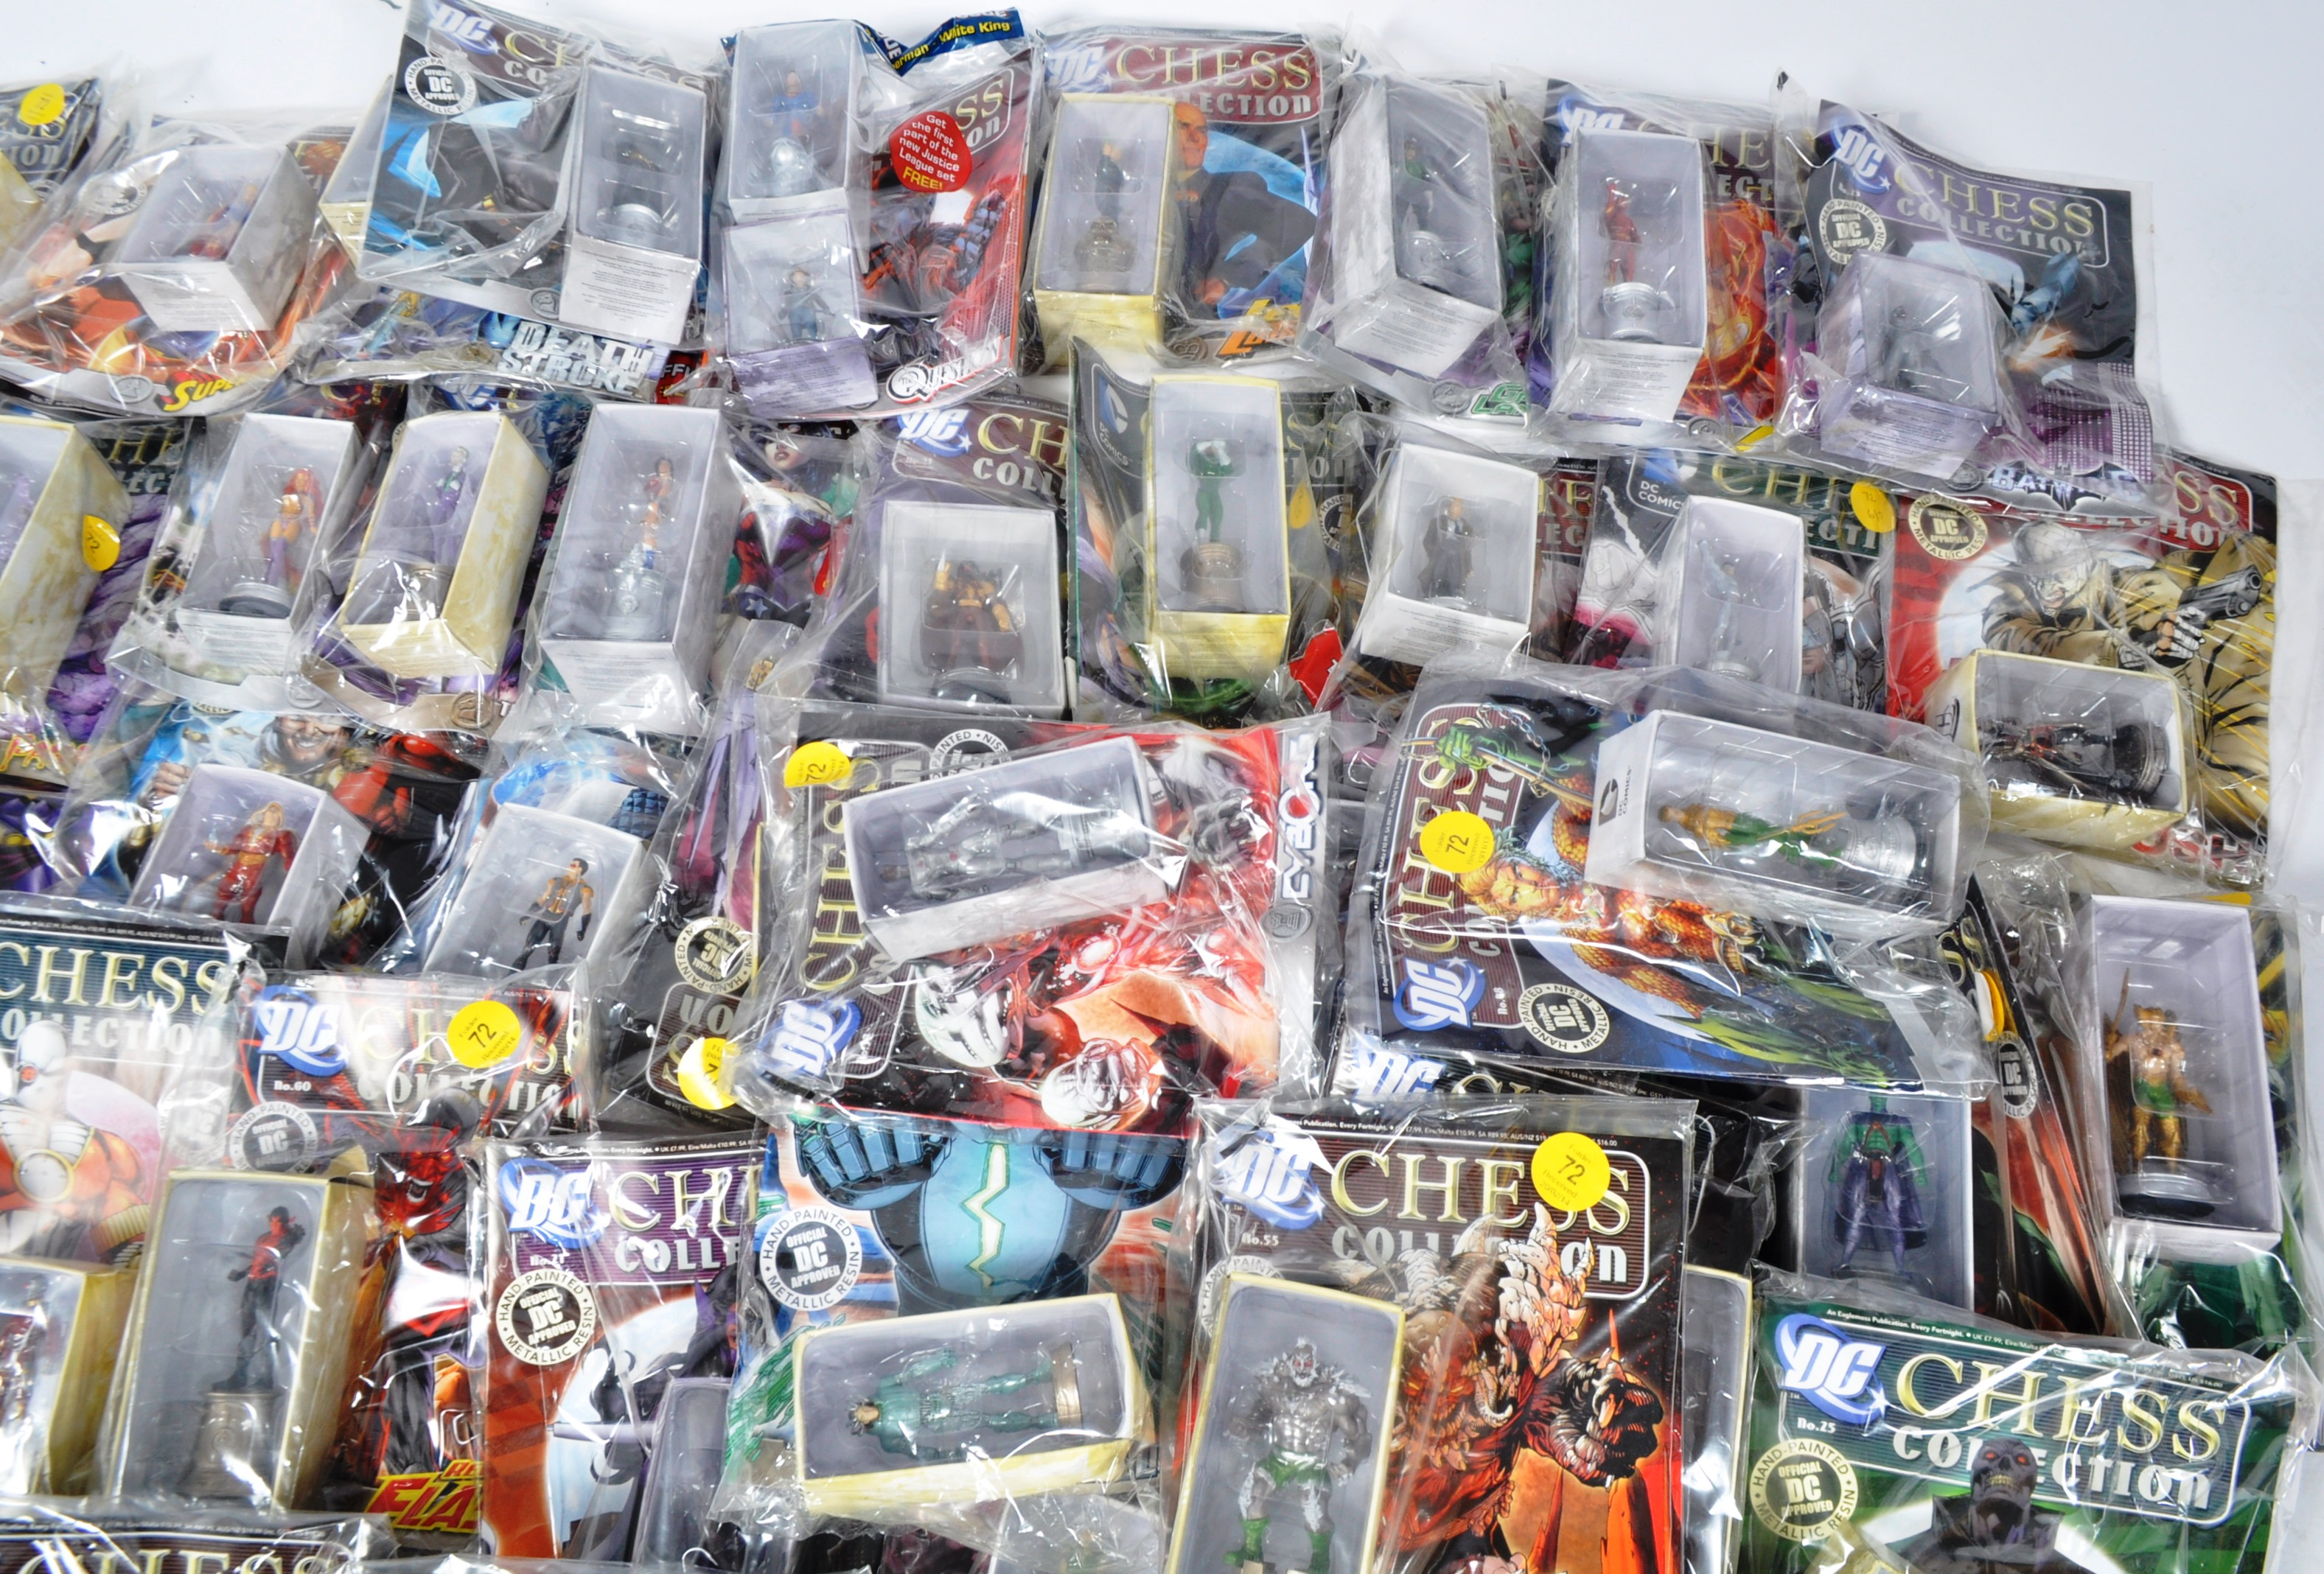 LARGE COLLECTION OF ASSORTED DC COMICS COLLECTIBLE CHESS PIECES - Image 5 of 6